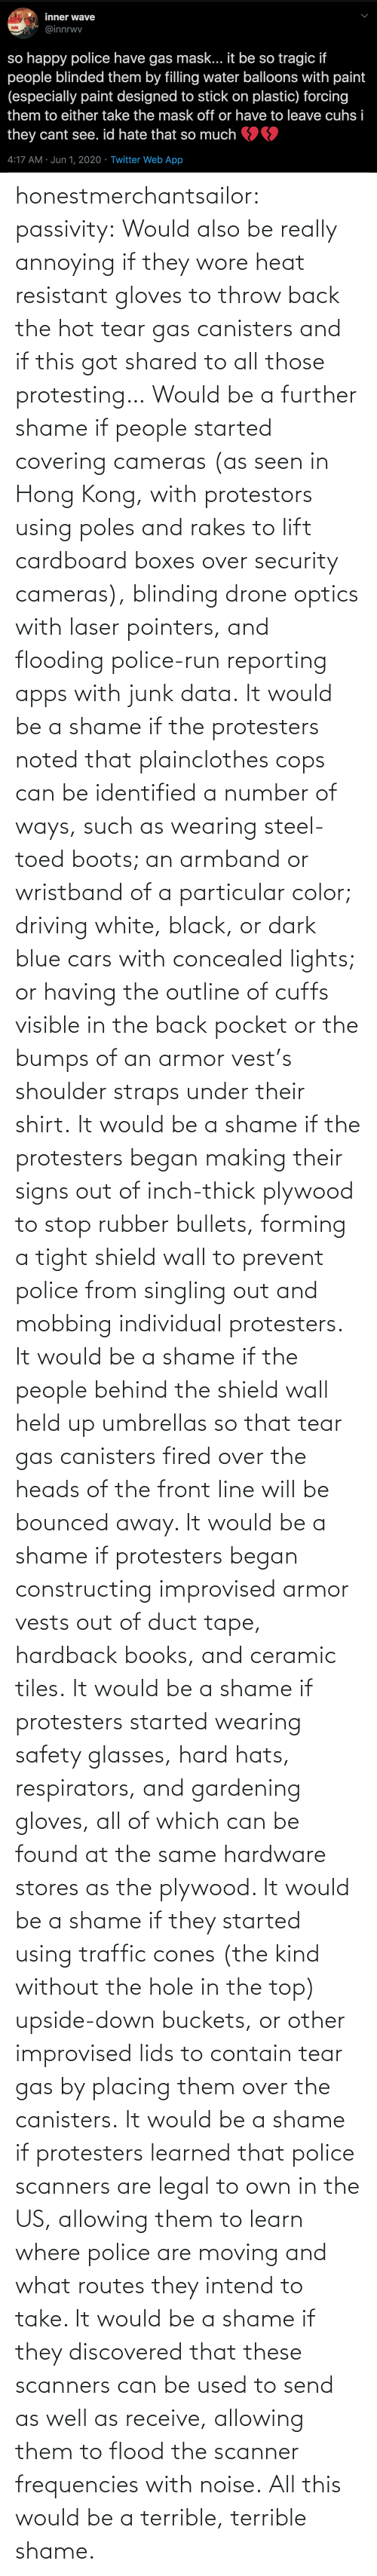 Books, Cars, and Driving: honestmerchantsailor:  passivity: Would also be really annoying if they wore heat resistant gloves to throw back the hot tear gas canisters and if this got shared to all those protesting… Would be a further shame if people started covering cameras (as seen in Hong Kong, with protestors using poles and rakes to lift cardboard boxes over security cameras), blinding drone optics with laser pointers, and flooding police-run reporting apps with junk data. It would be a shame if the protesters noted that plainclothes cops can be identified a number of ways, such as wearing steel-toed boots; an armband or wristband of a particular color; driving white, black, or dark blue cars with concealed lights; or having the outline of cuffs visible in the back pocket or the bumps of an armor vest's shoulder straps under their shirt. It would be a shame if the protesters began making their signs out of inch-thick plywood to stop rubber bullets, forming a tight shield wall to prevent police from singling out and mobbing individual protesters. It would be a shame if the people behind the shield wall held up umbrellas so that tear gas canisters fired over the heads of the front line will be bounced away. It would be a shame if protesters began constructing improvised armor vests out of duct tape, hardback books, and ceramic tiles. It would be a shame if protesters started wearing safety glasses, hard hats, respirators, and gardening gloves, all of which can be found at the same hardware stores as the plywood. It would be a shame if they started using traffic cones (the kind without the hole in the top) upside-down buckets, or other improvised lids to contain tear gas by placing them over the canisters. It would be a shame if protesters learned that police scanners are legal to own in the US, allowing them to learn where police are moving and what routes they intend to take. It would be a shame if they discovered that these scanners can be used to send as well as